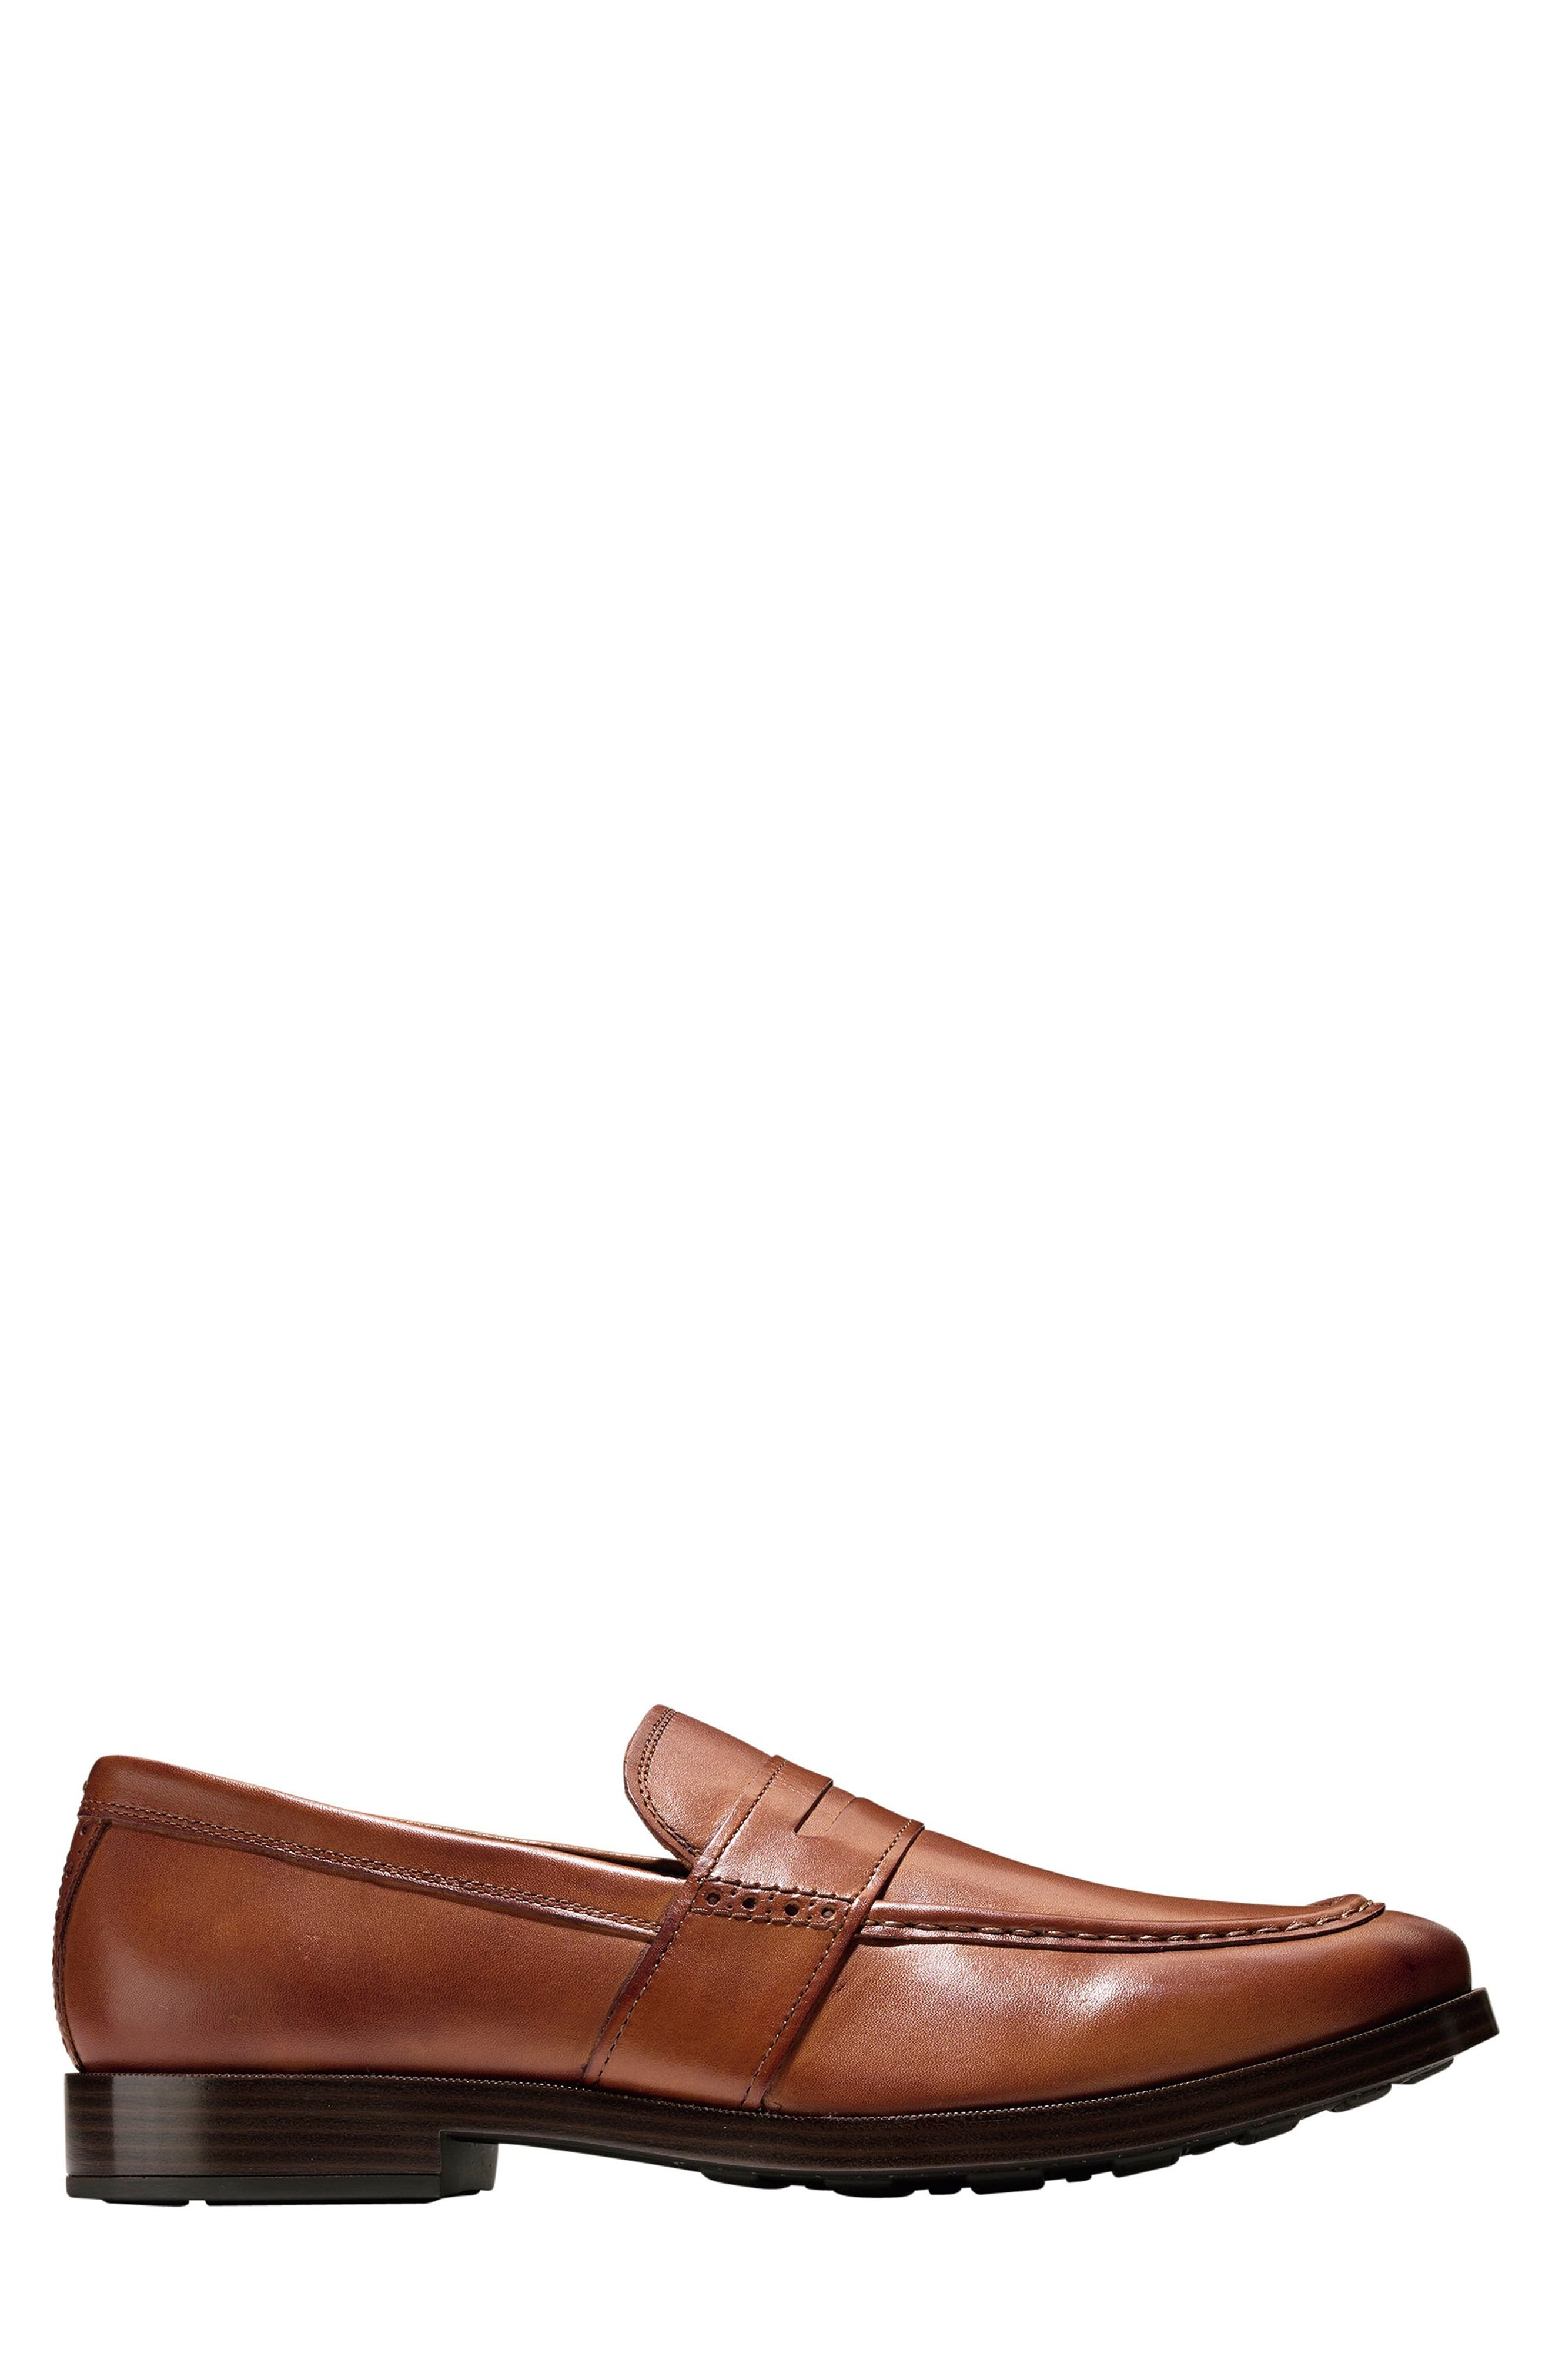 COLE HAAN, Jefferson Grand Penny Loafer, Alternate thumbnail 3, color, BRITISH TAN LEATHER